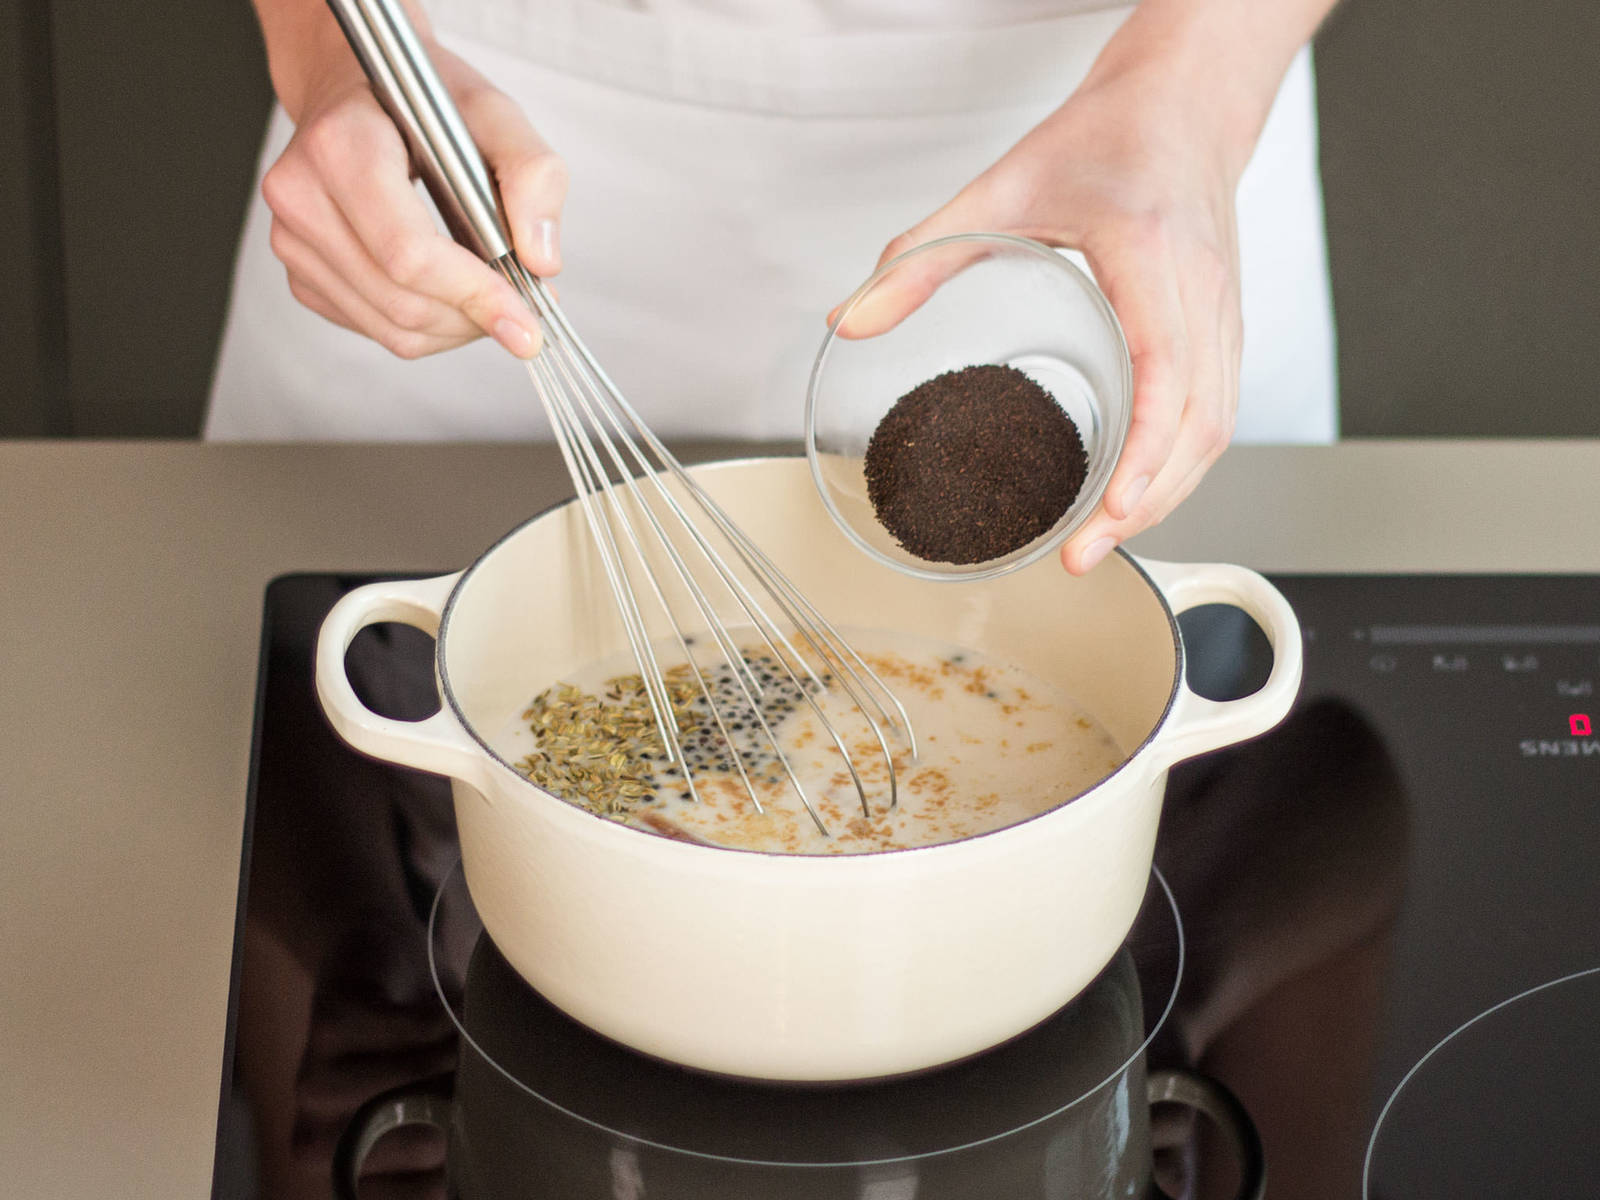 In a large saucepan, combine almond milk, ginger, cloves, cardamom pods, peppercorns, cinnamon stick, fennel seeds, and black tea. Heat over medium heat for approx. 2 – 3 min. until steamy.